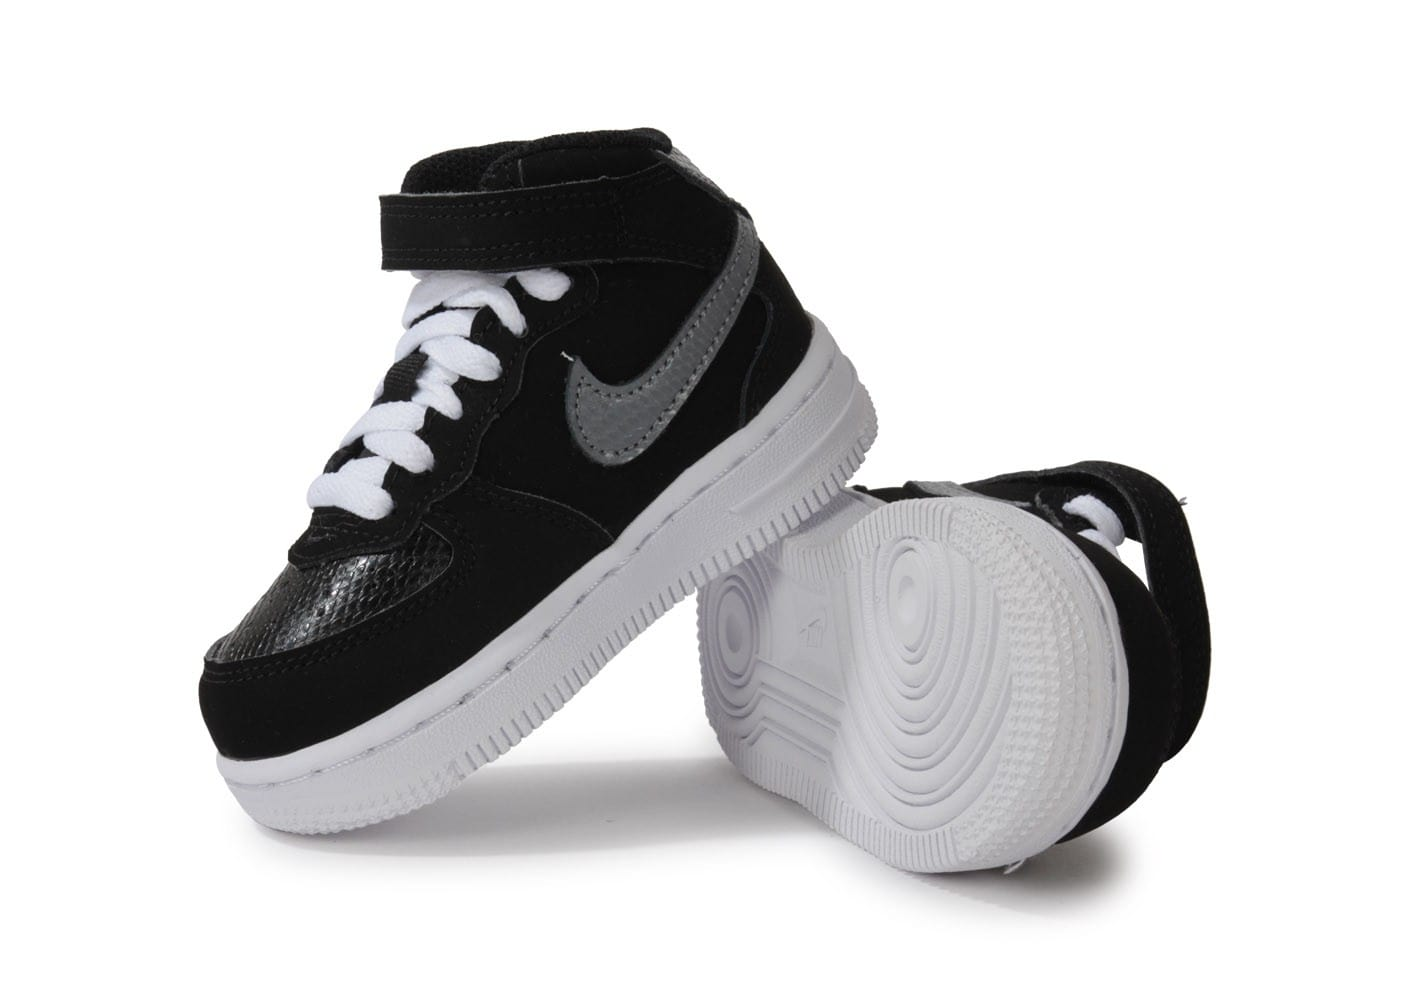 1 Blanche Baskets Bebe nike Mid Air Pour Nike Bebe Force nwNvm80